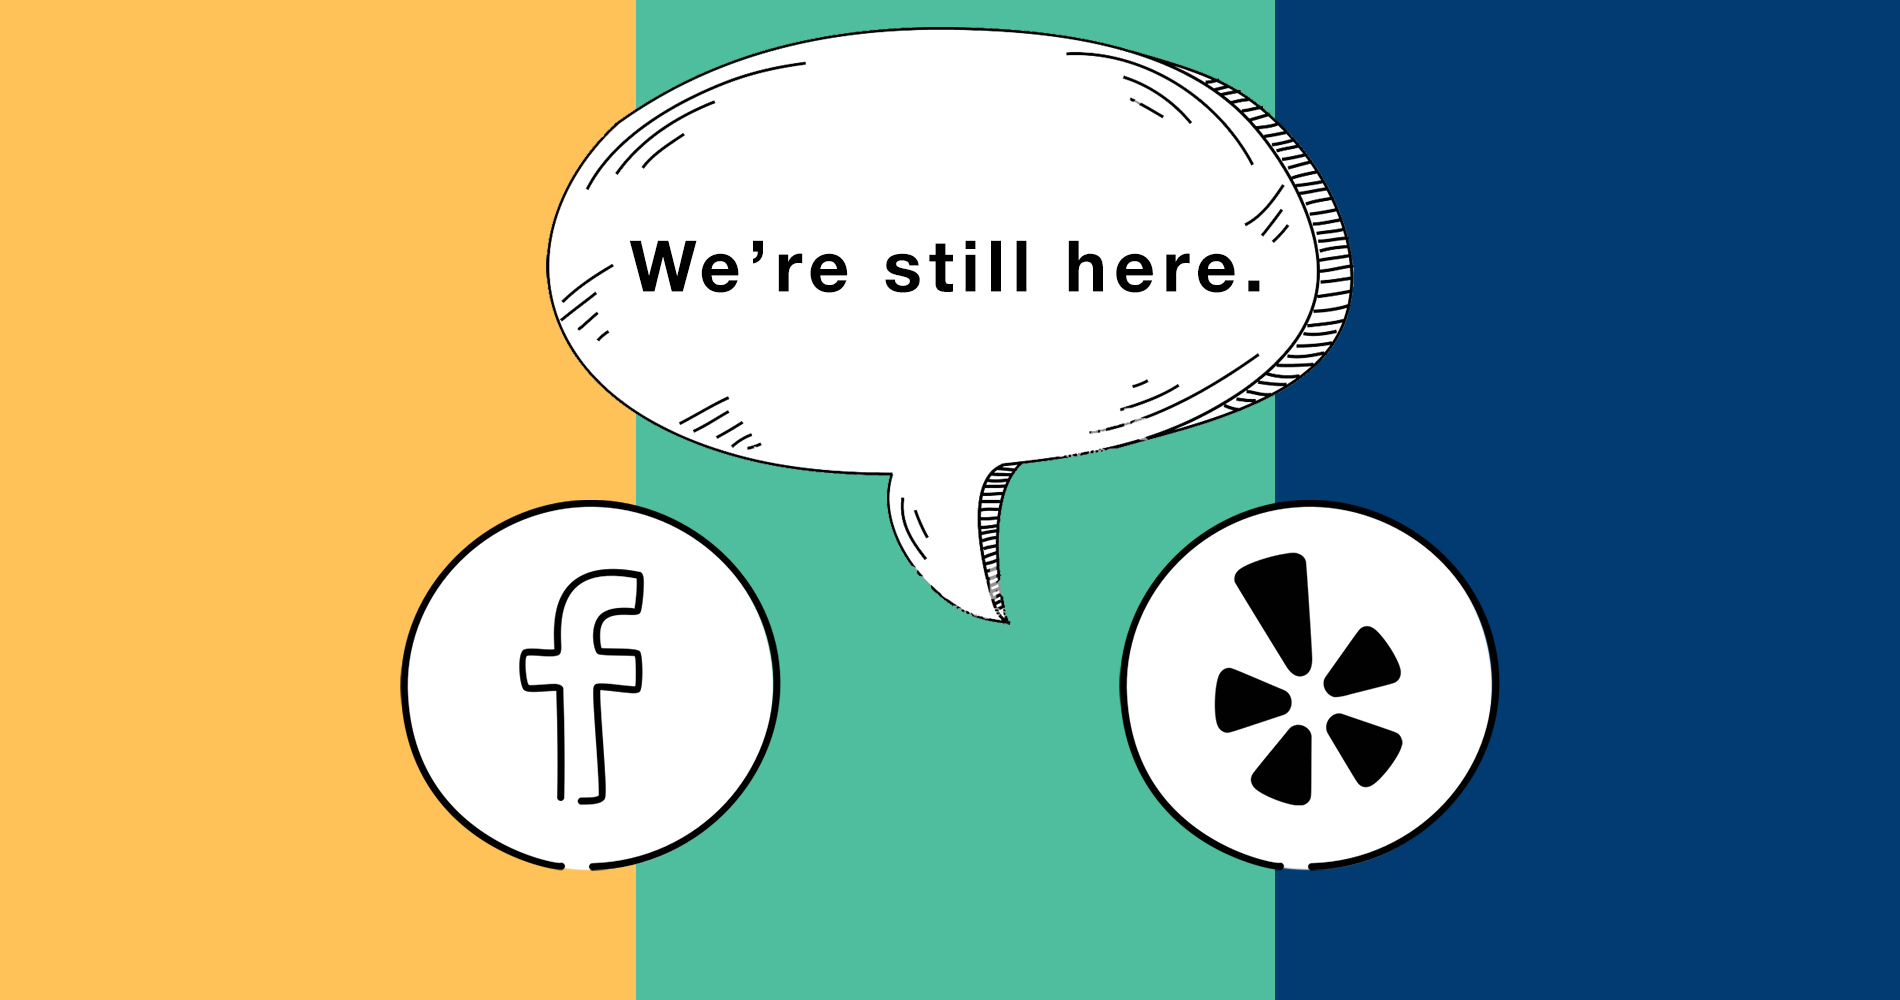 We're still here: pivoting your business